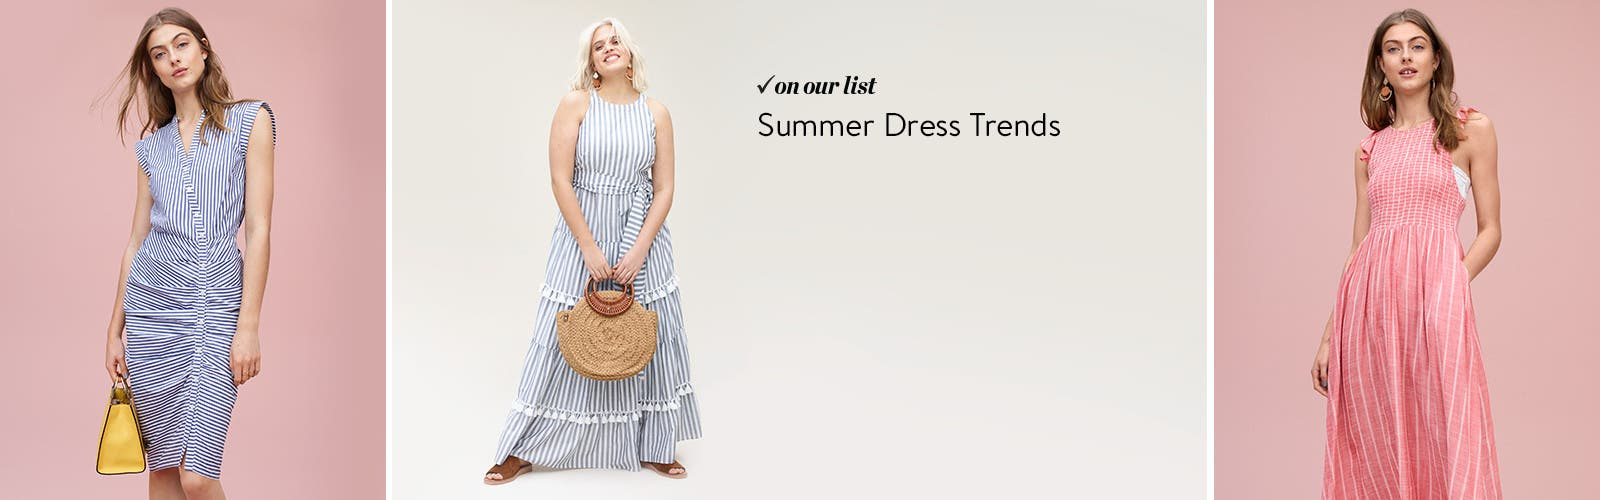 Summer dress trends.